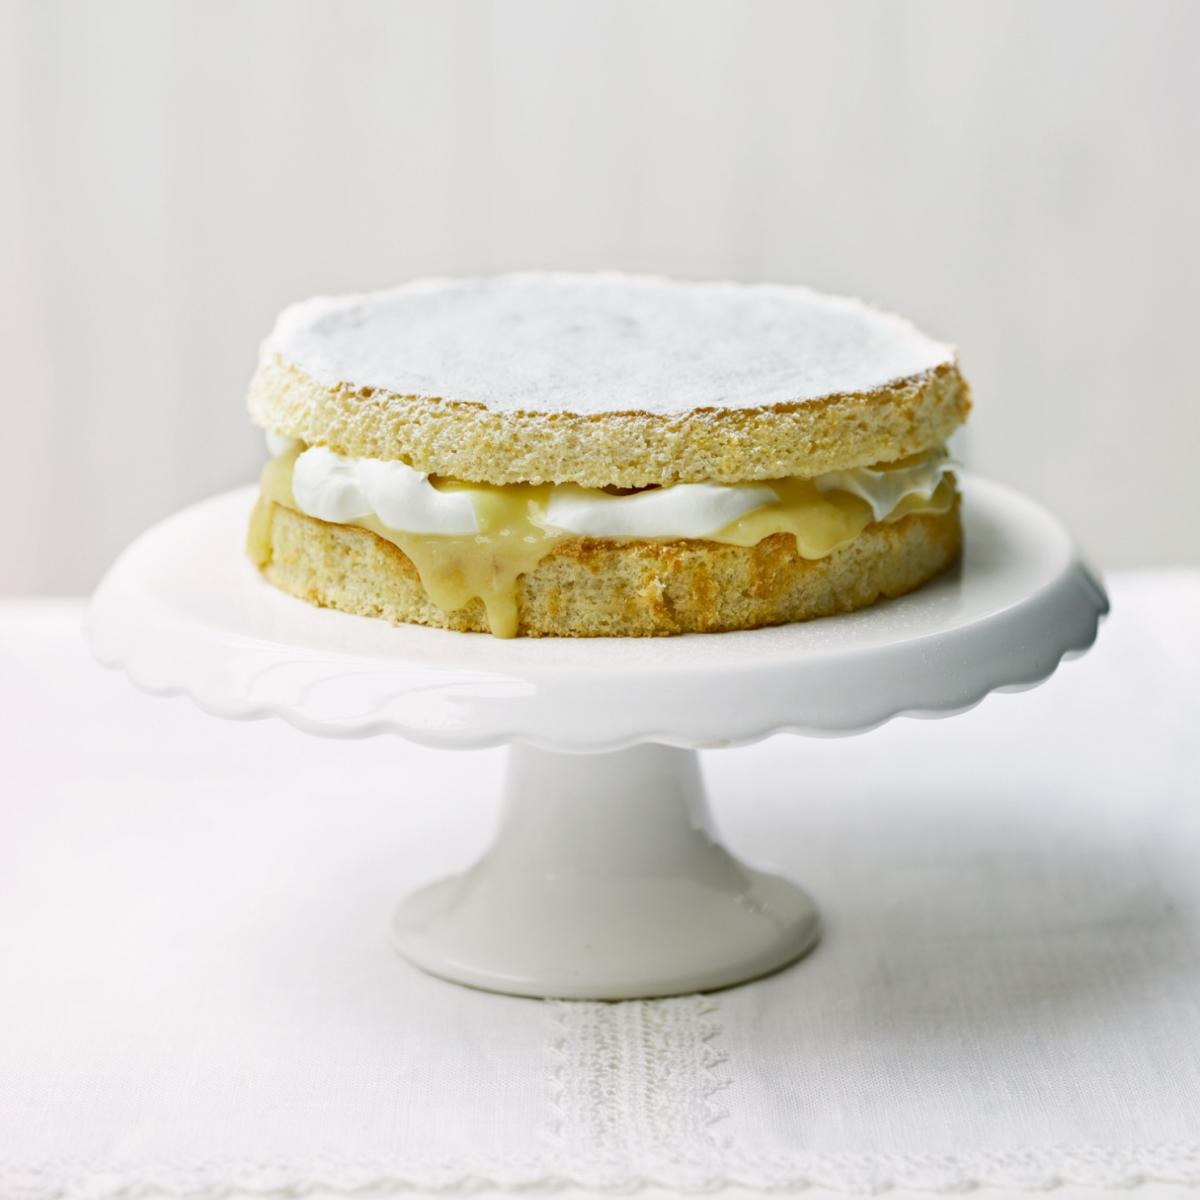 A picture of Delia's Lemon Griestorte recipe